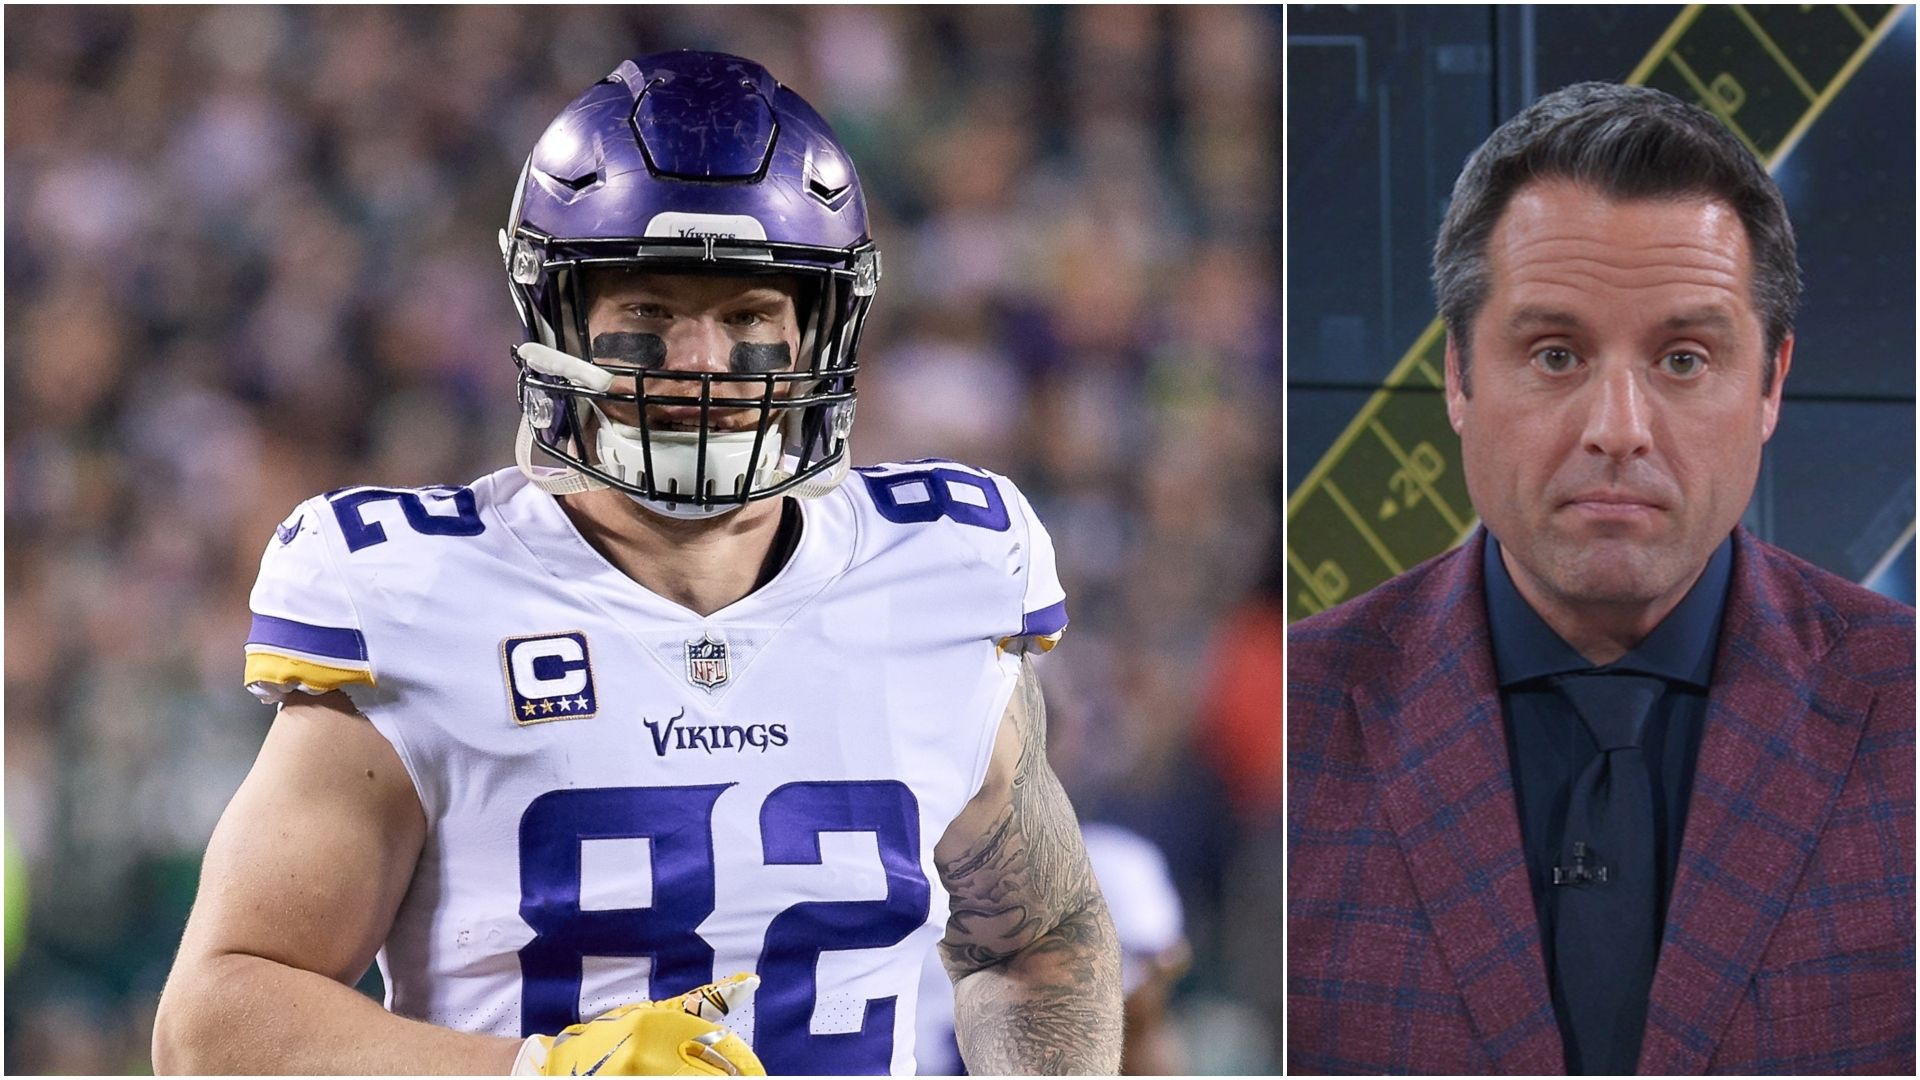 Vikings' Kyle Rudolph at crossroads: Chances of deal, trade options, more